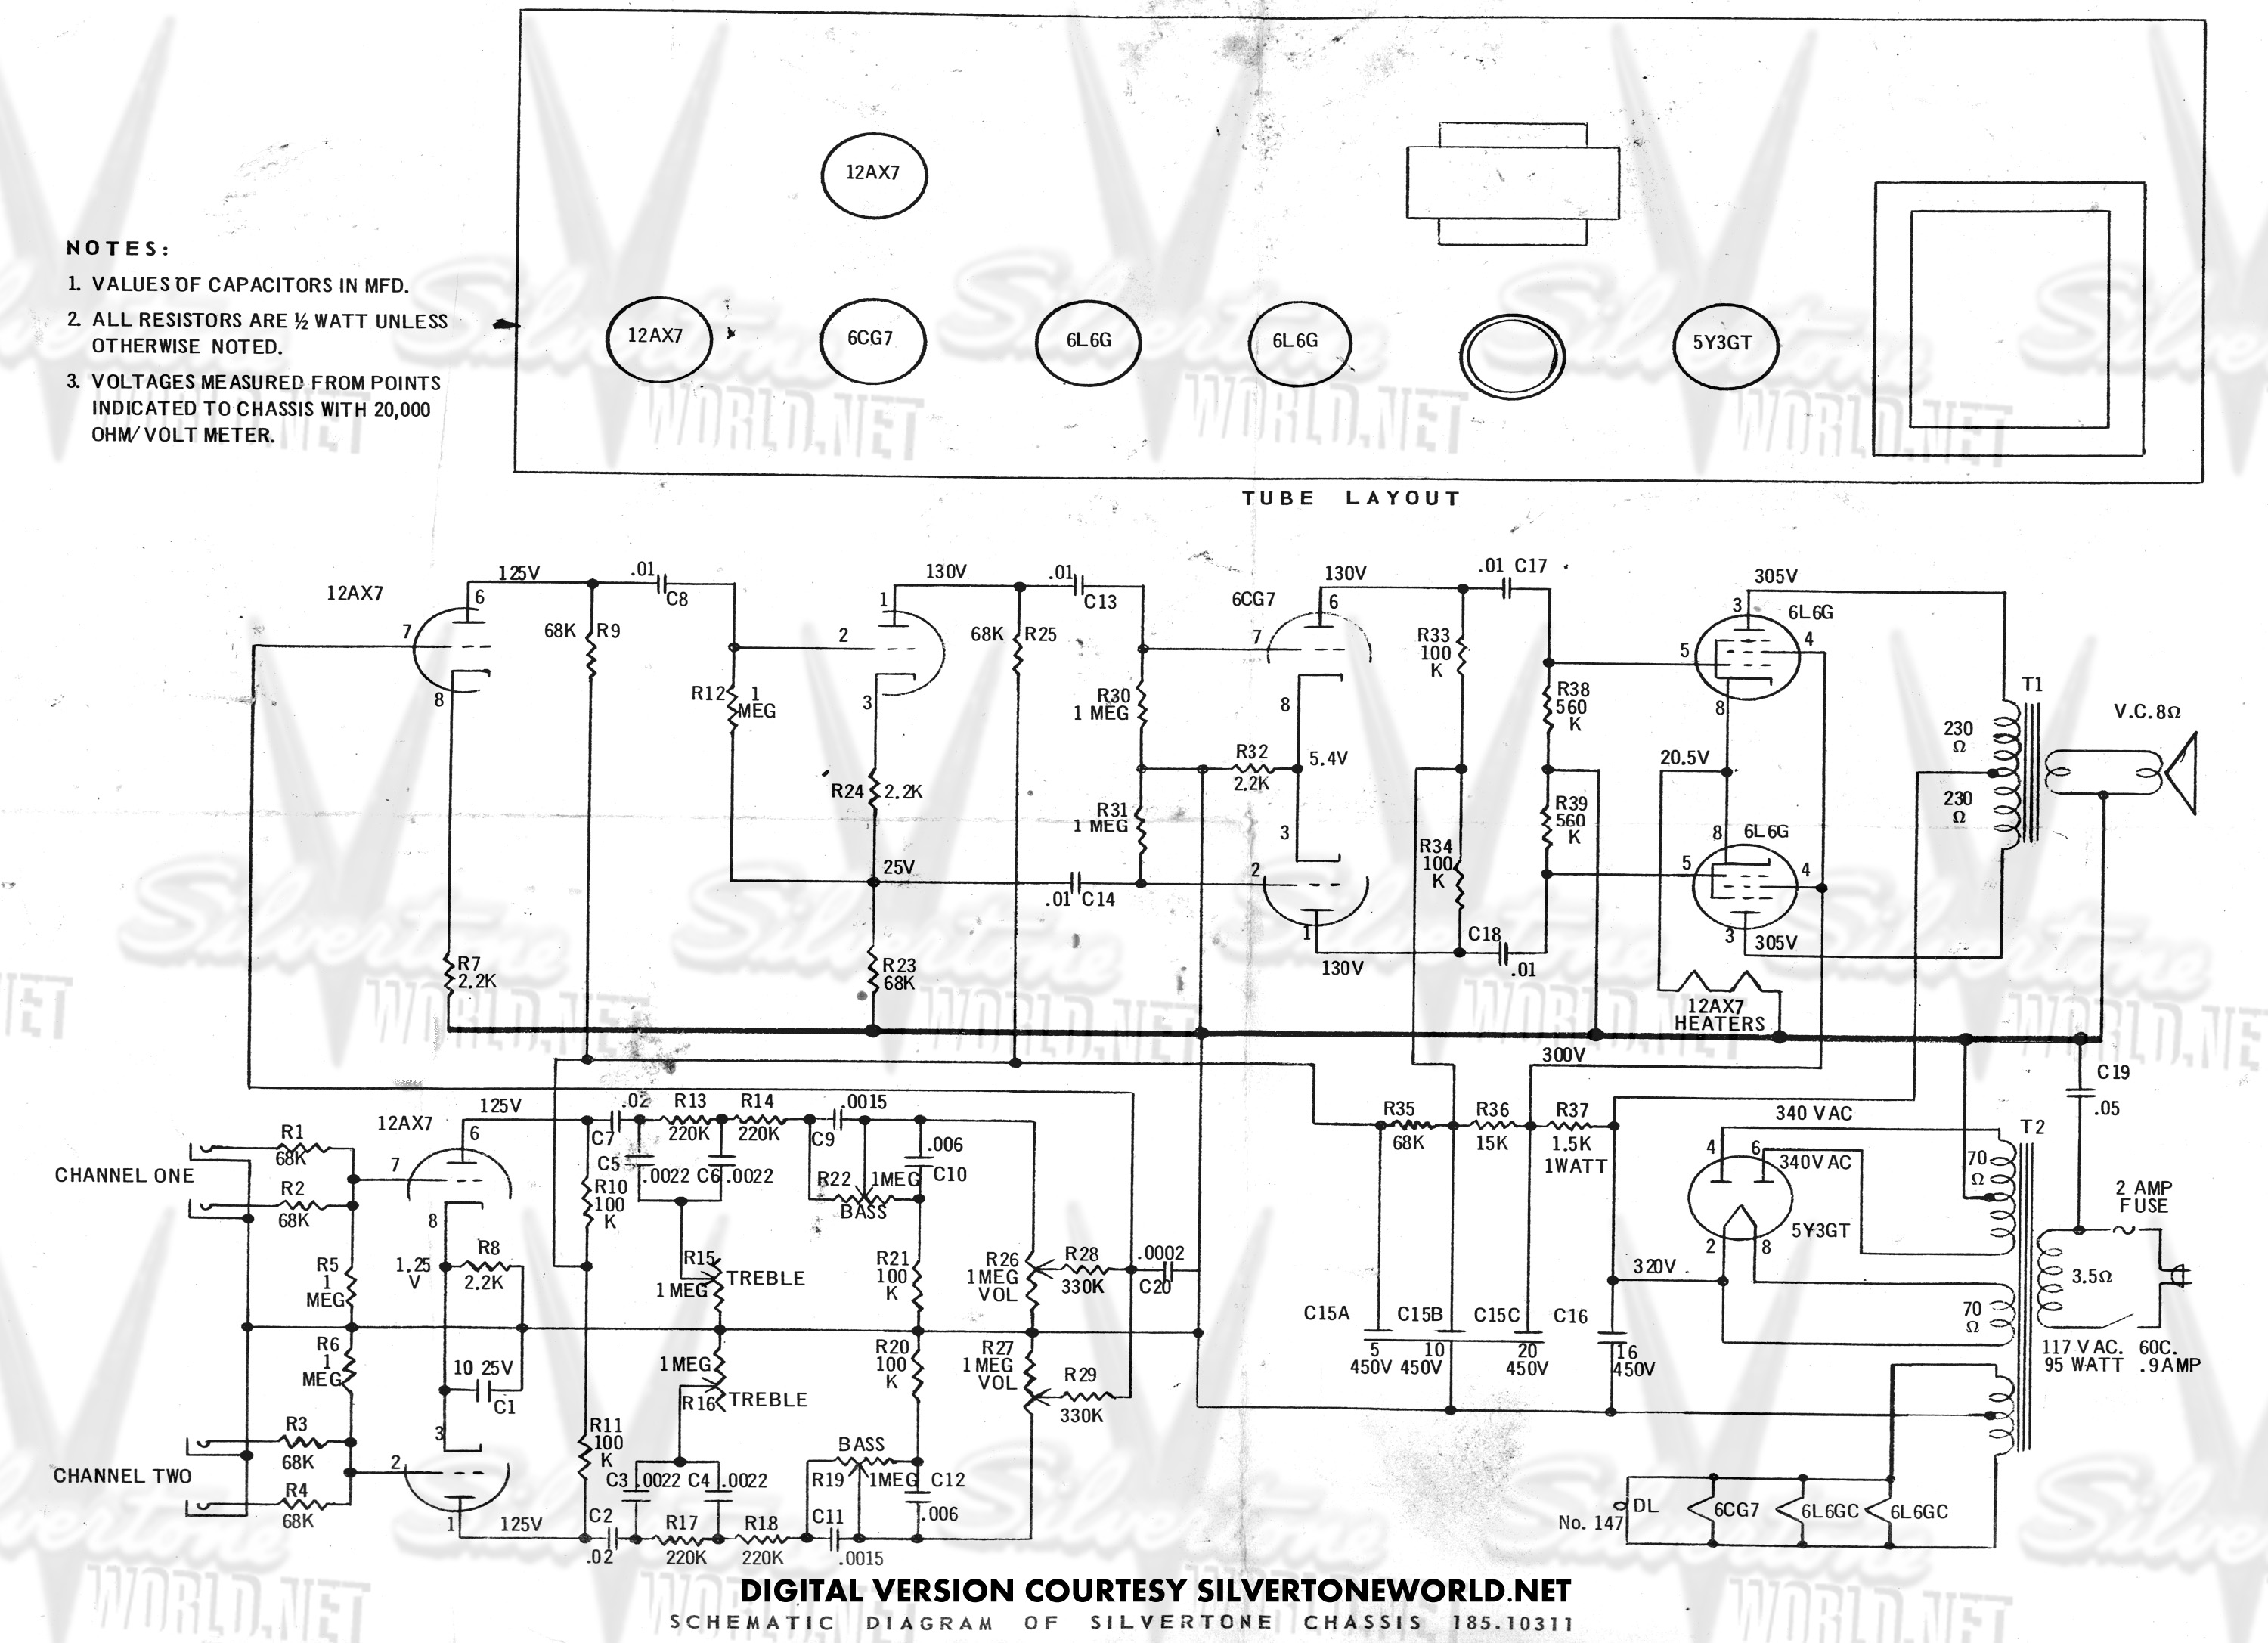 Silvertone Amp Schematic - Today Diagram Database on